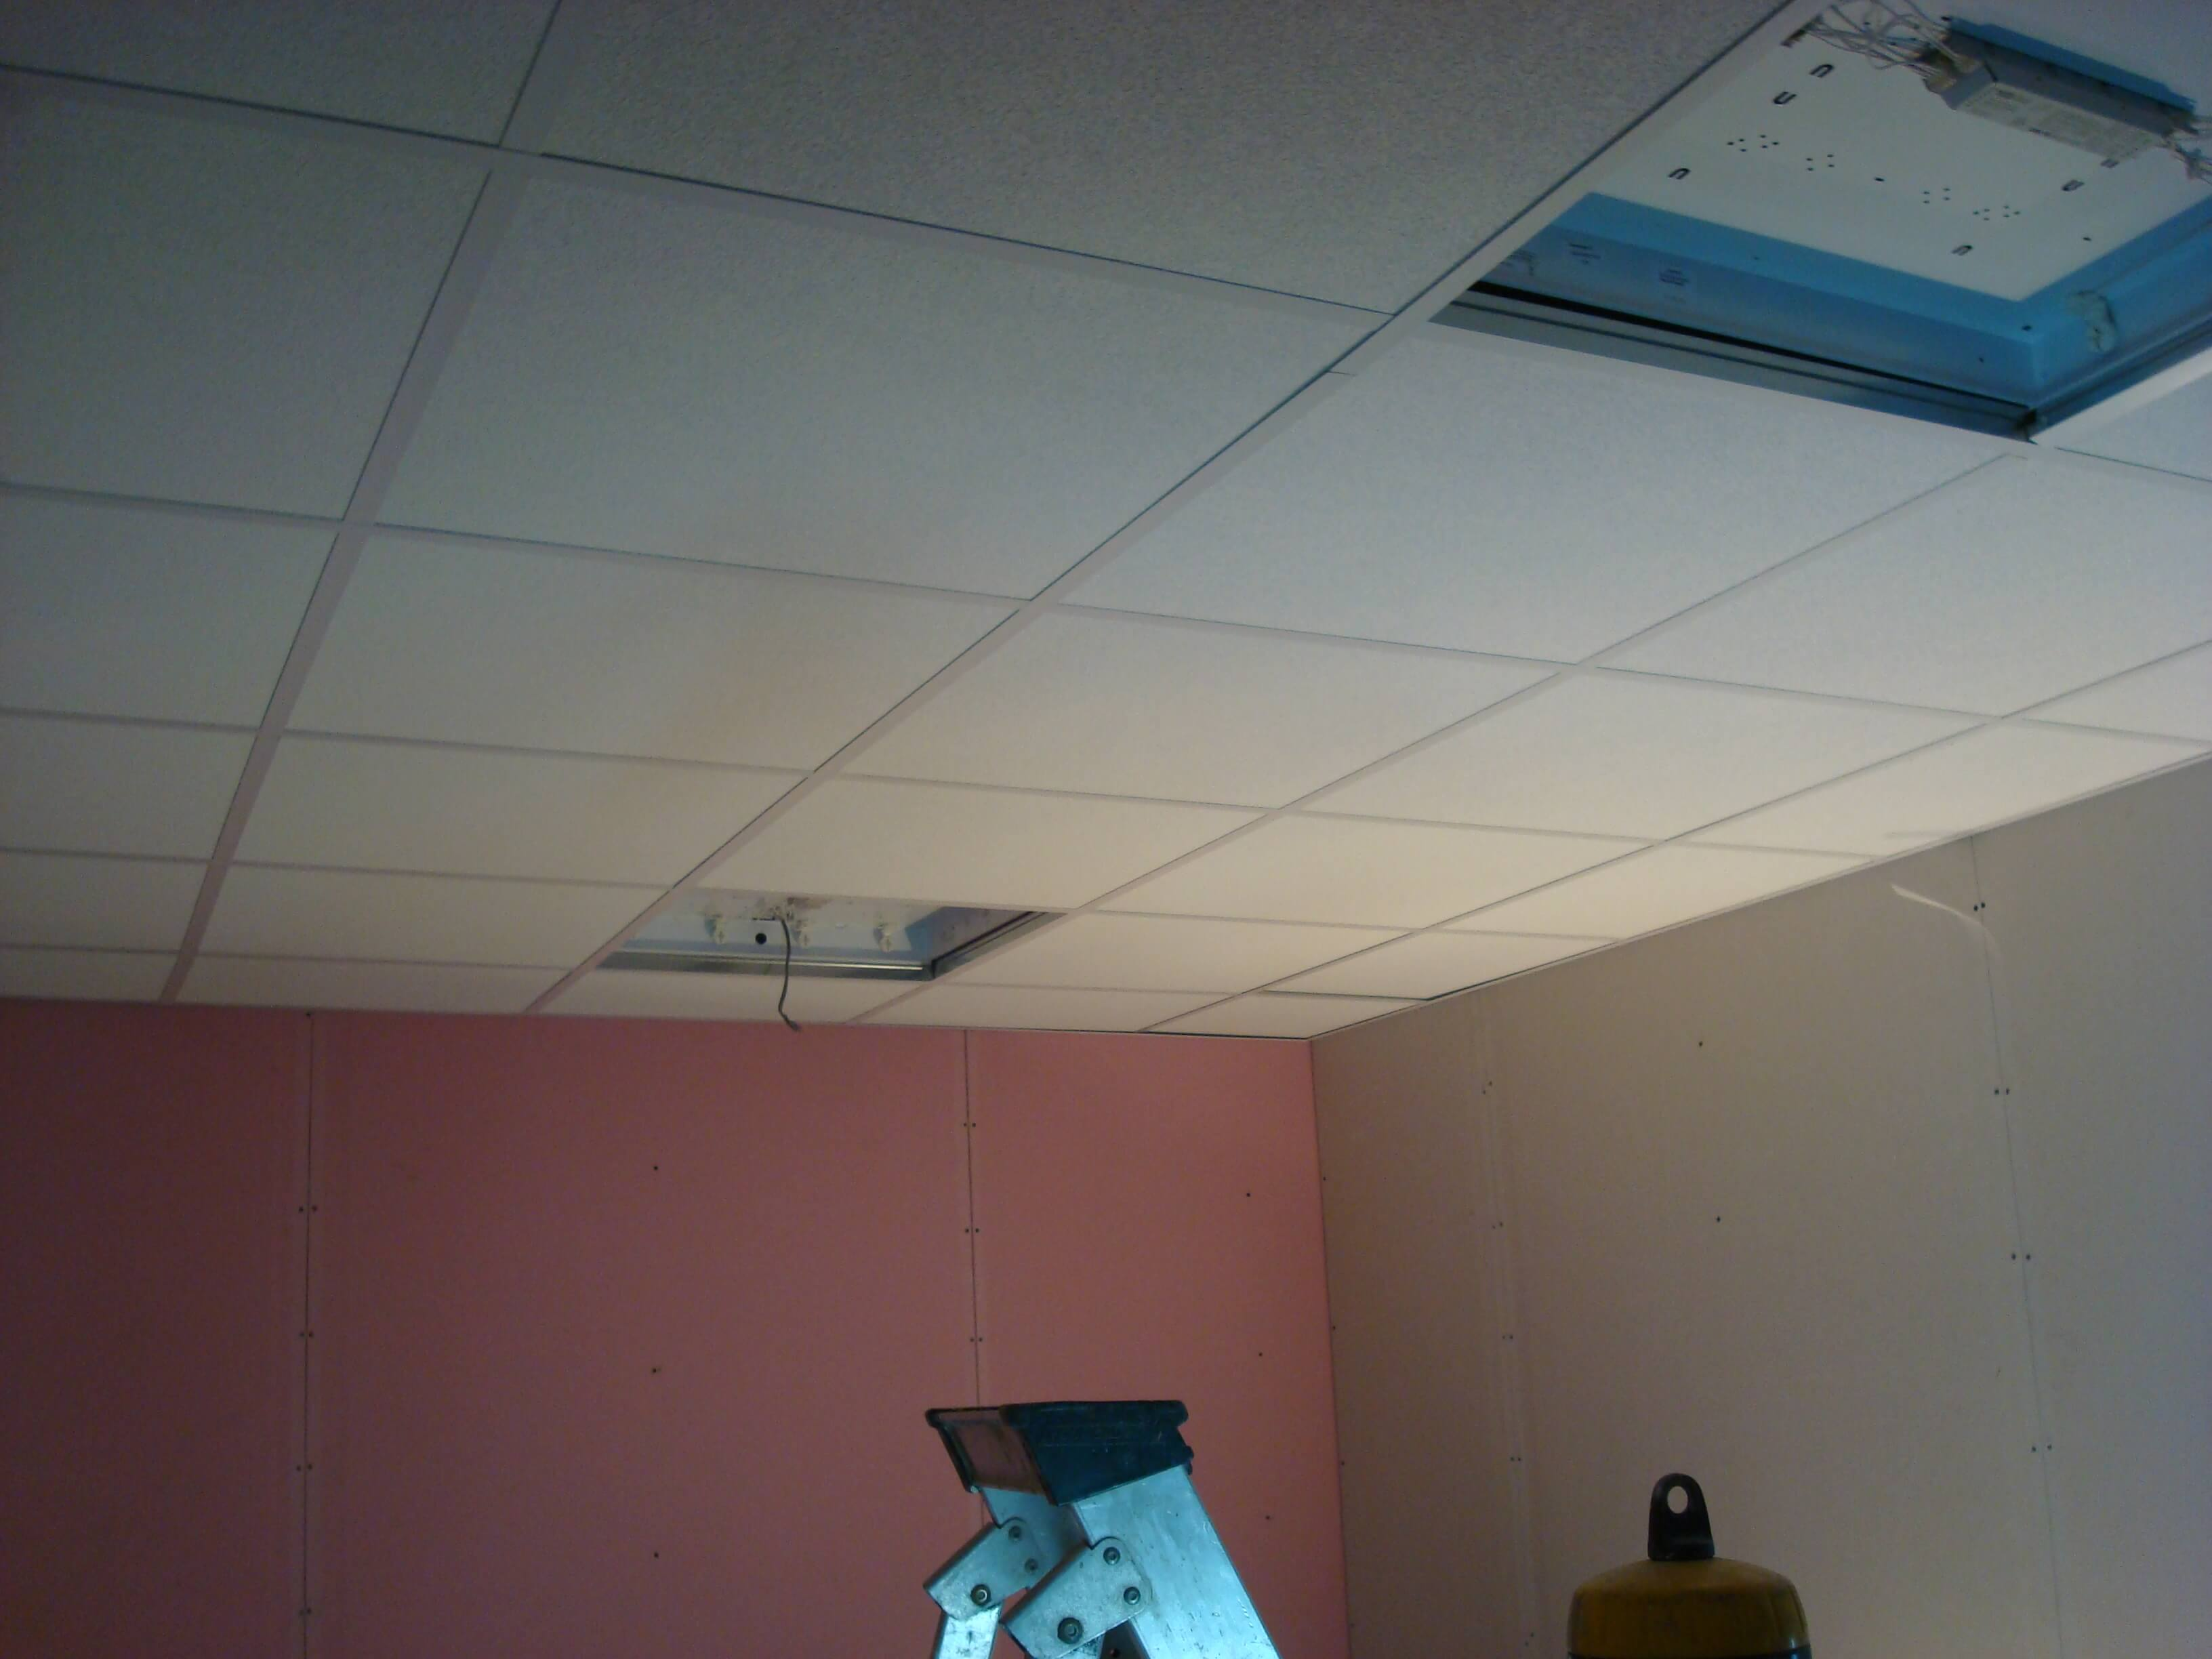 New suspended ceiling